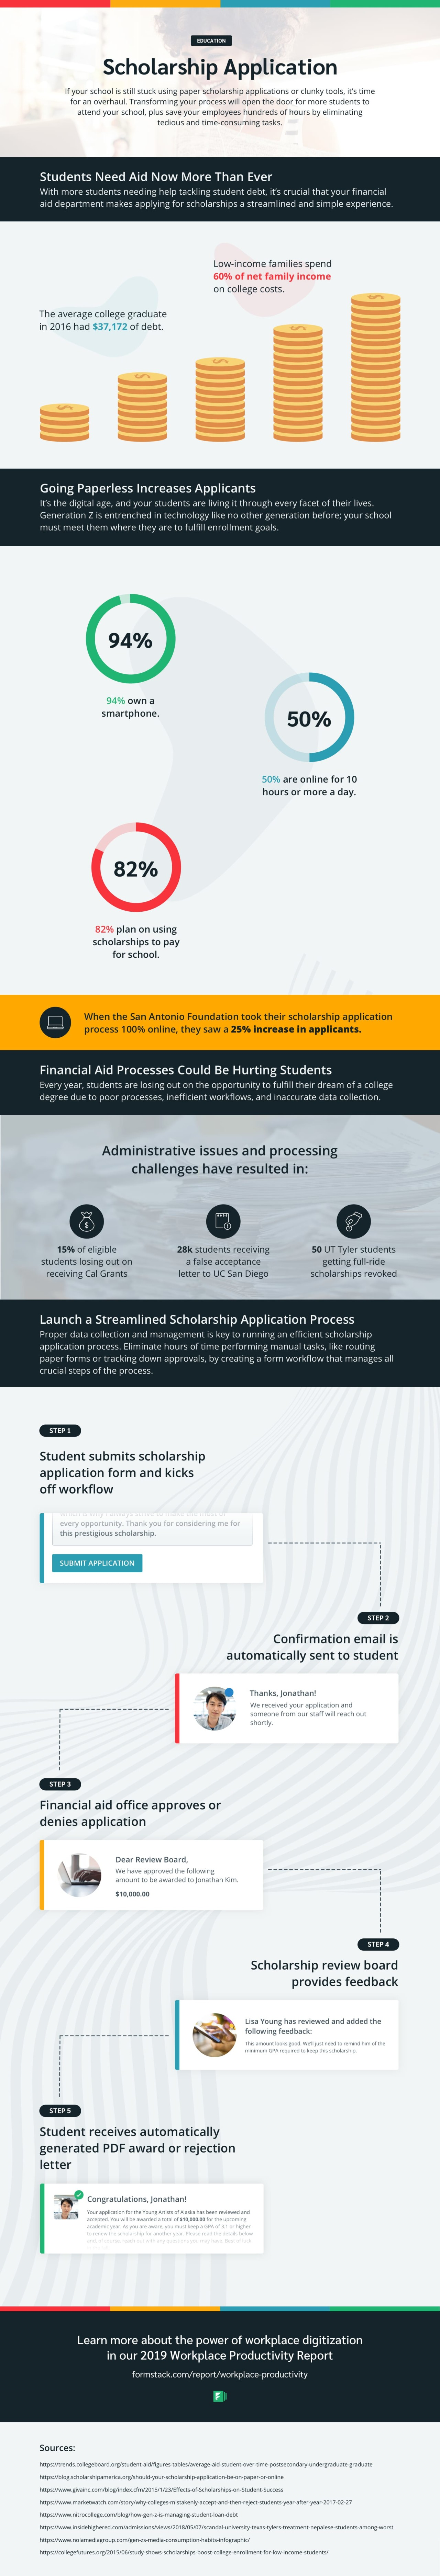 scholarship application process infographic